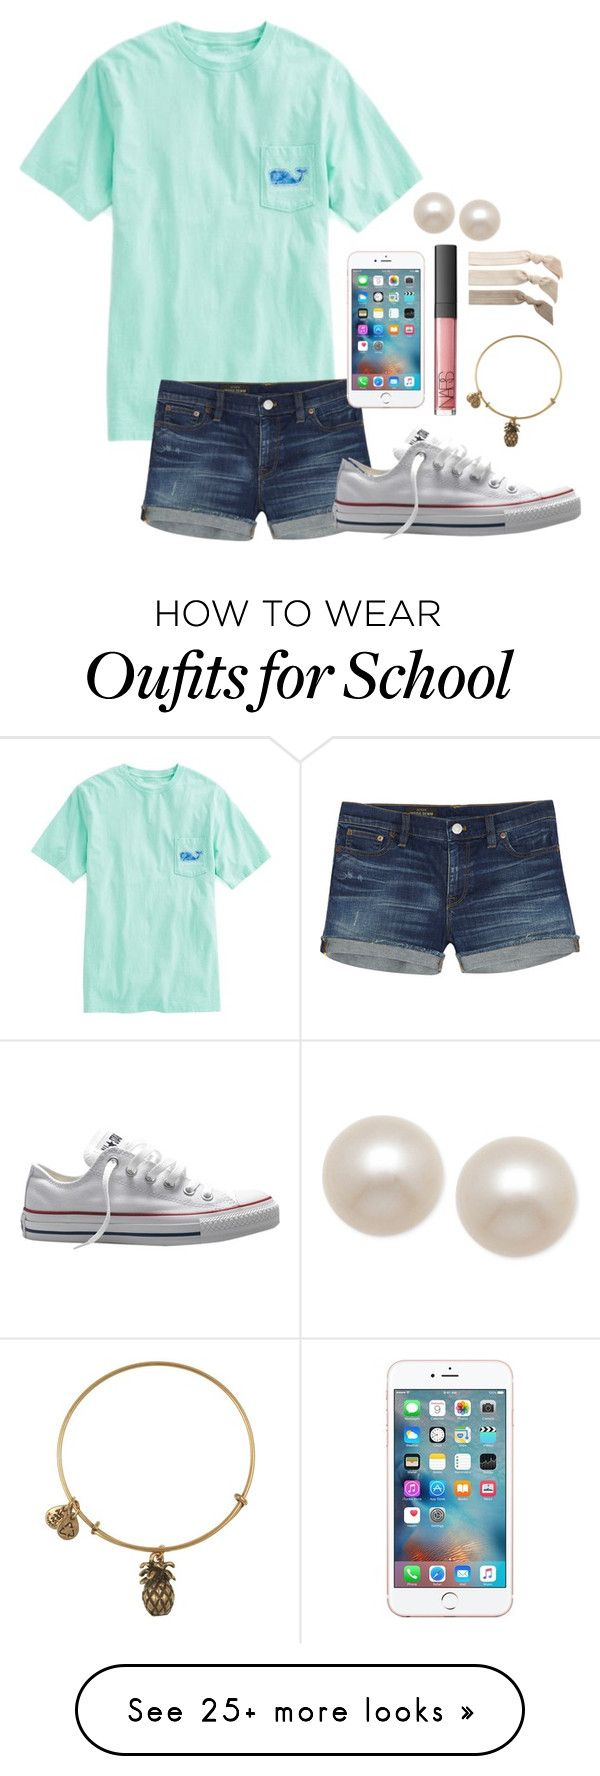 """Day 2-Last Day of School"" by whalesandprints on Polyvore featuring Vineyard Vines, J.Crew, Converse, Alex and Ani, NARS Cosmetics, Honora, Emi-Jay and funinthesunwithmollyandellie"